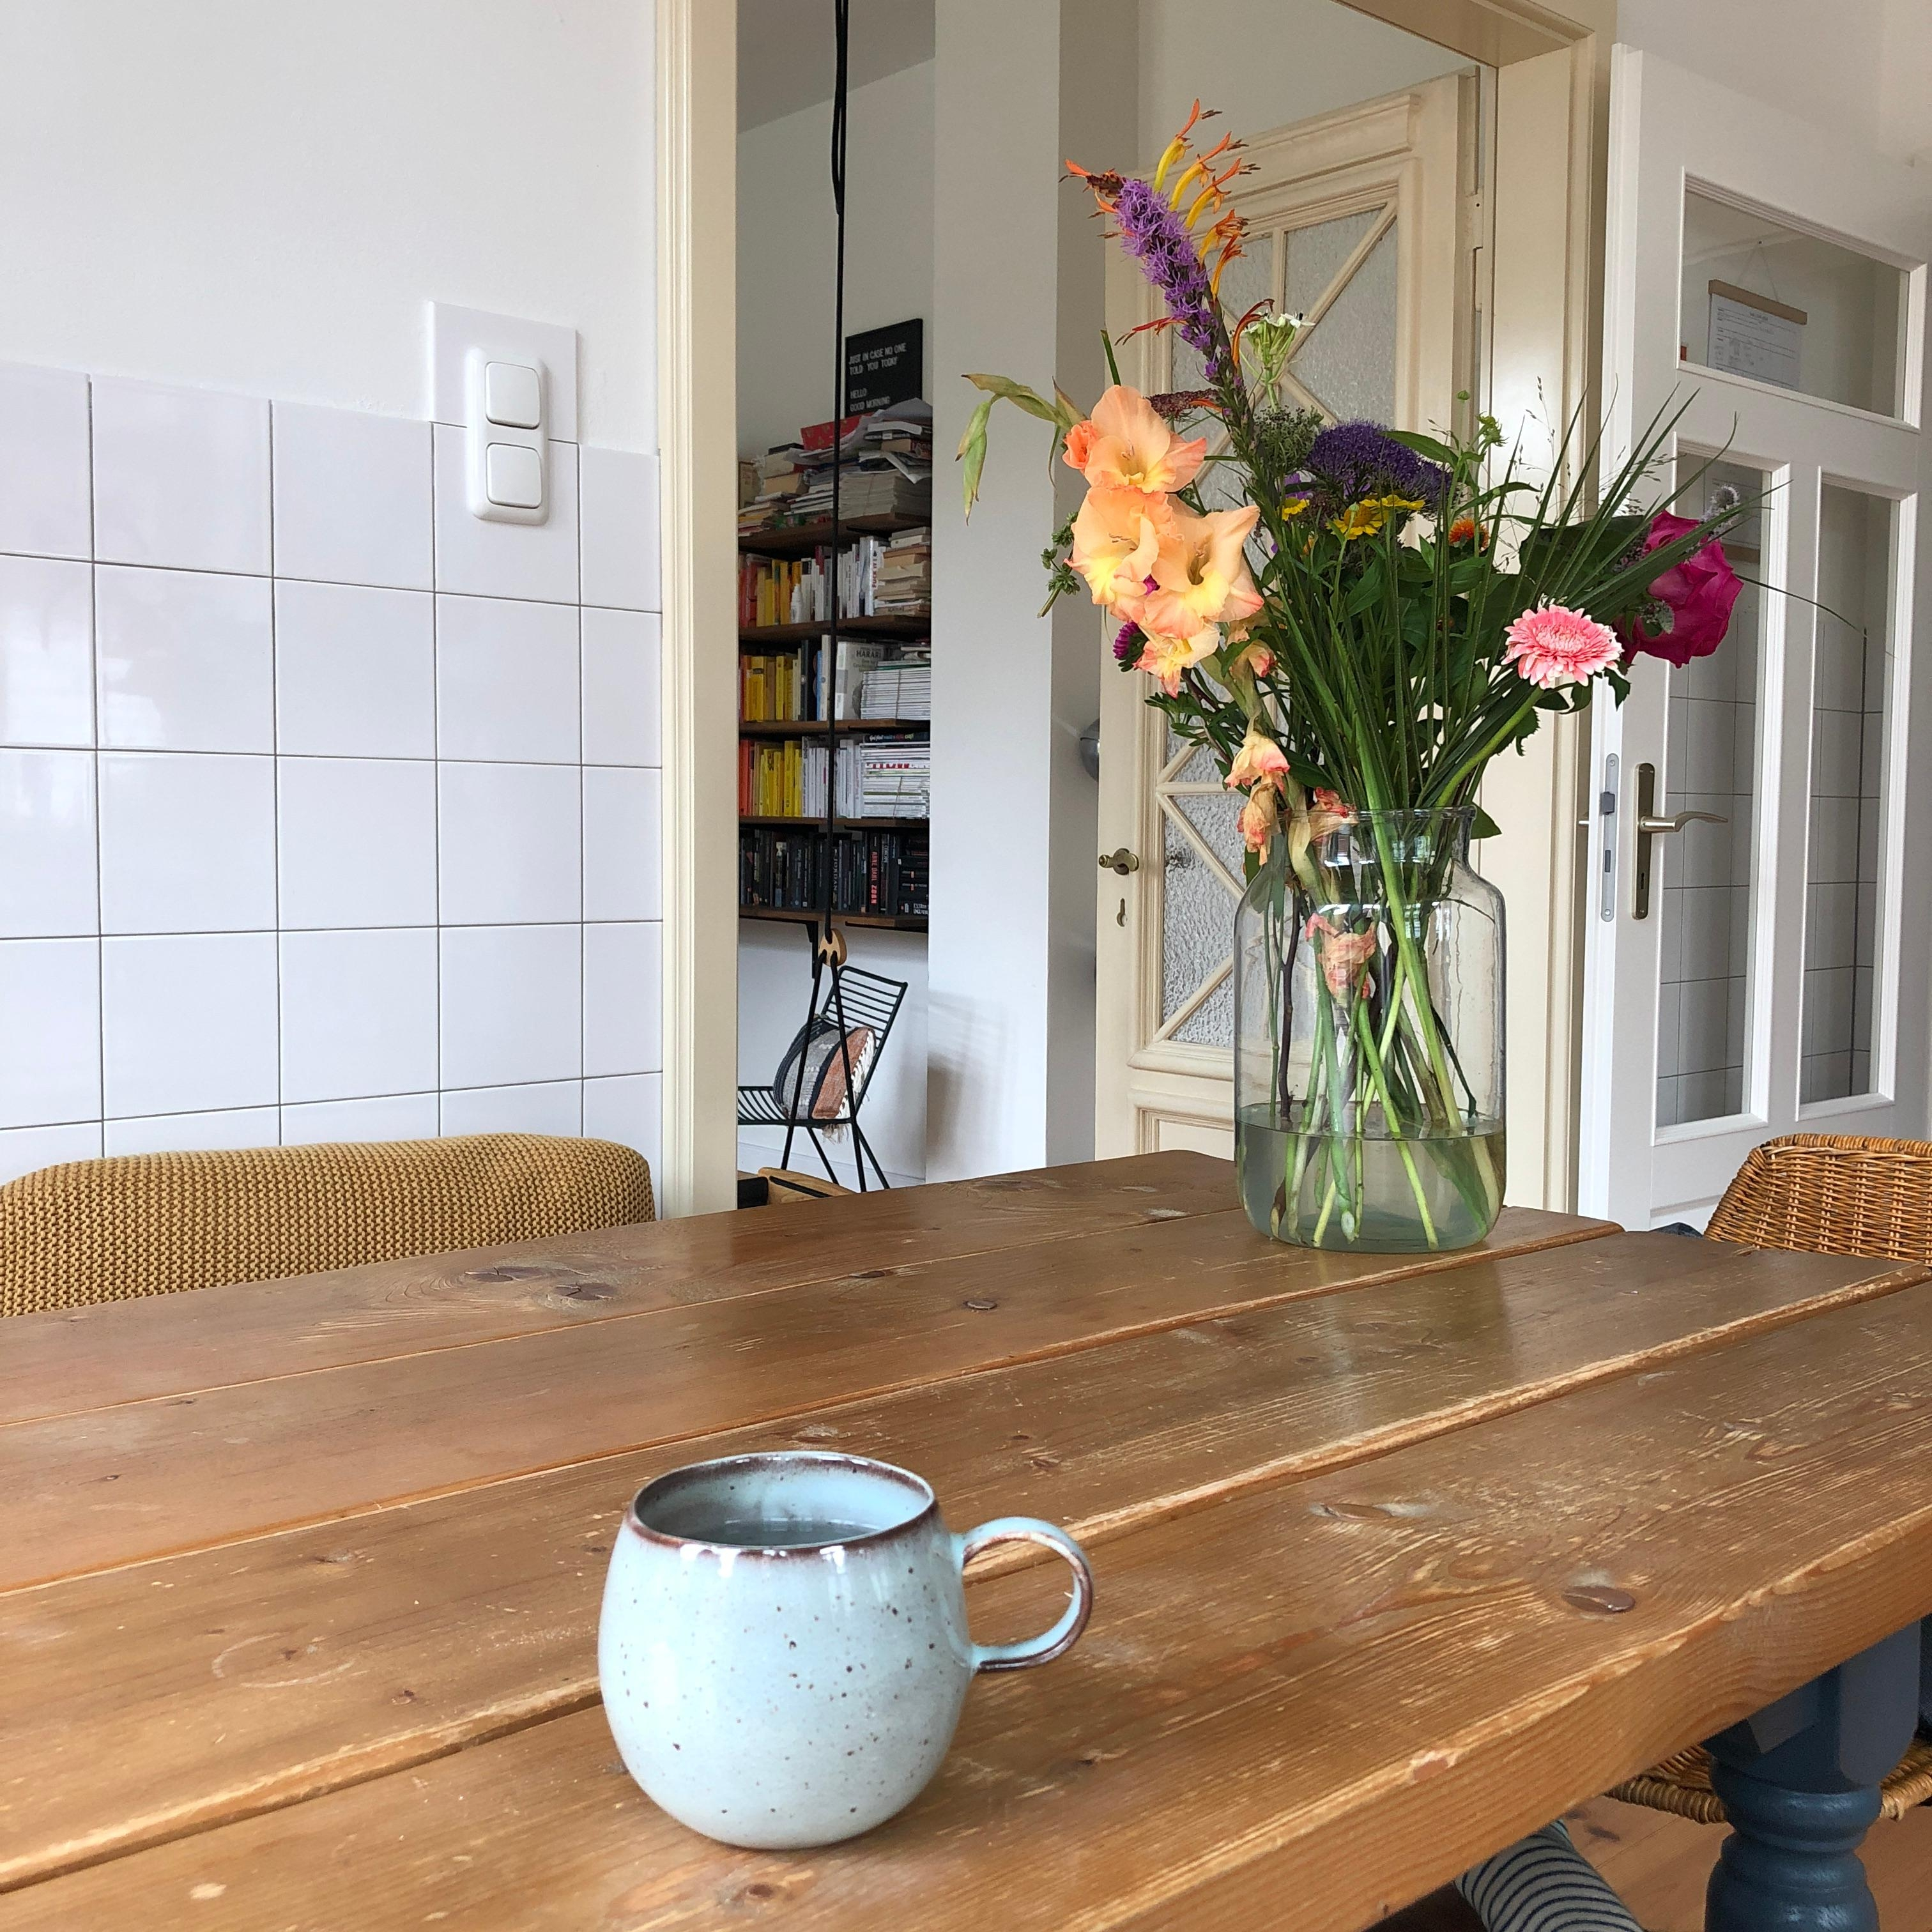 #freshflowers #bloomon #flowmagazin #casagernemann #kitchen #kitchendesign #hygge #table #candles #hyggelig #industrial